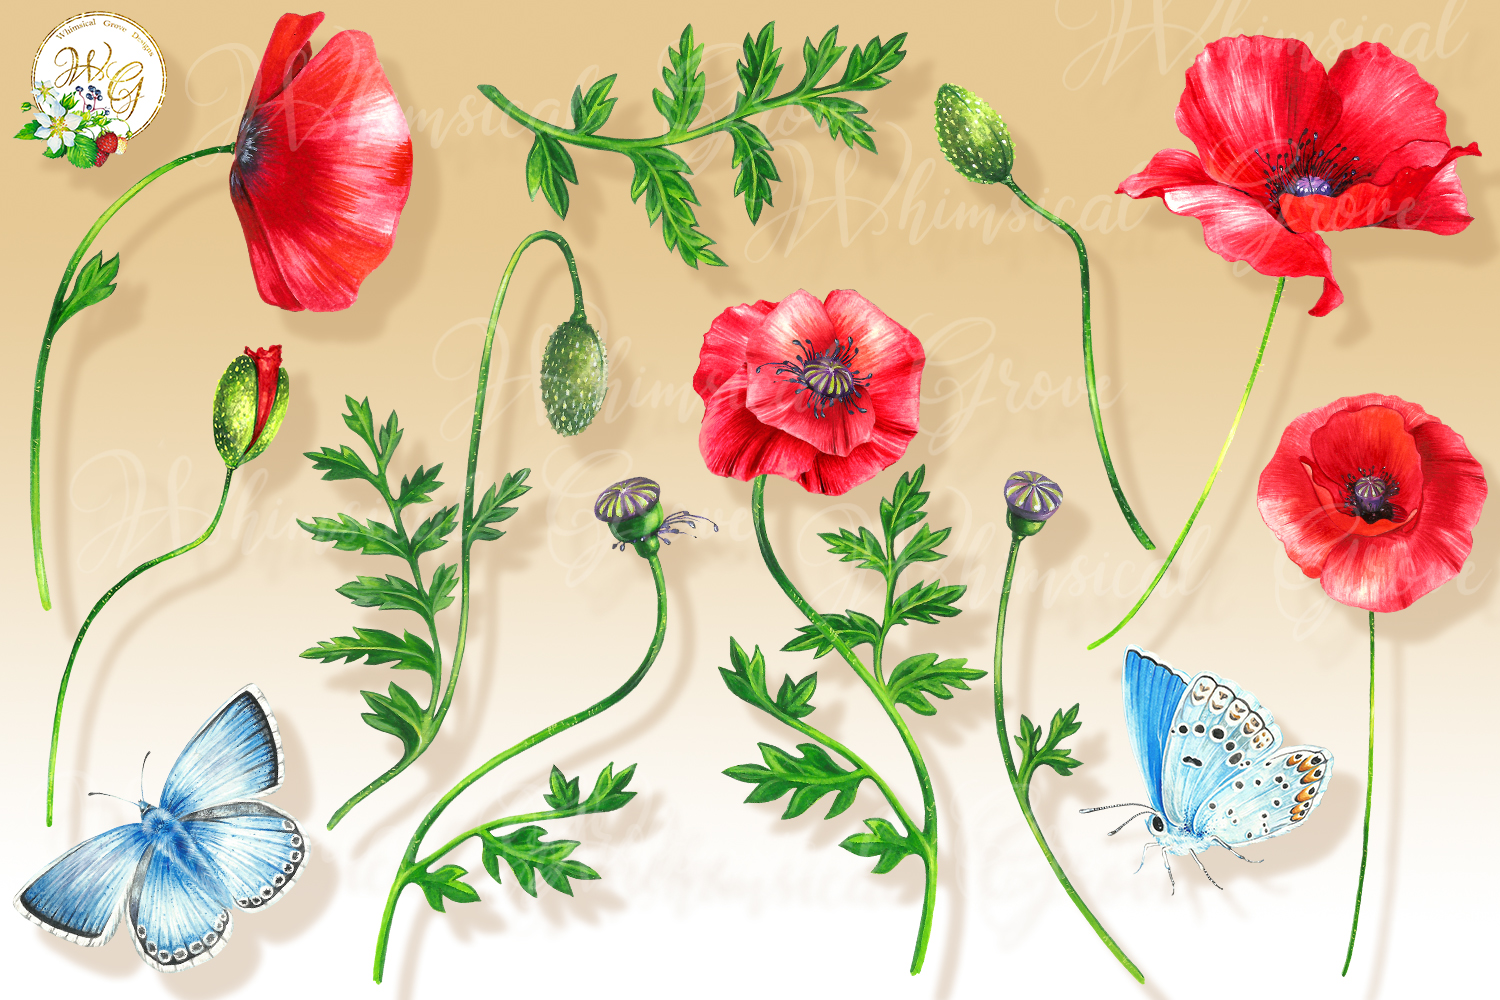 Scarlet Poppy set 18 watercolor handpainted clipart, floral, example image 2